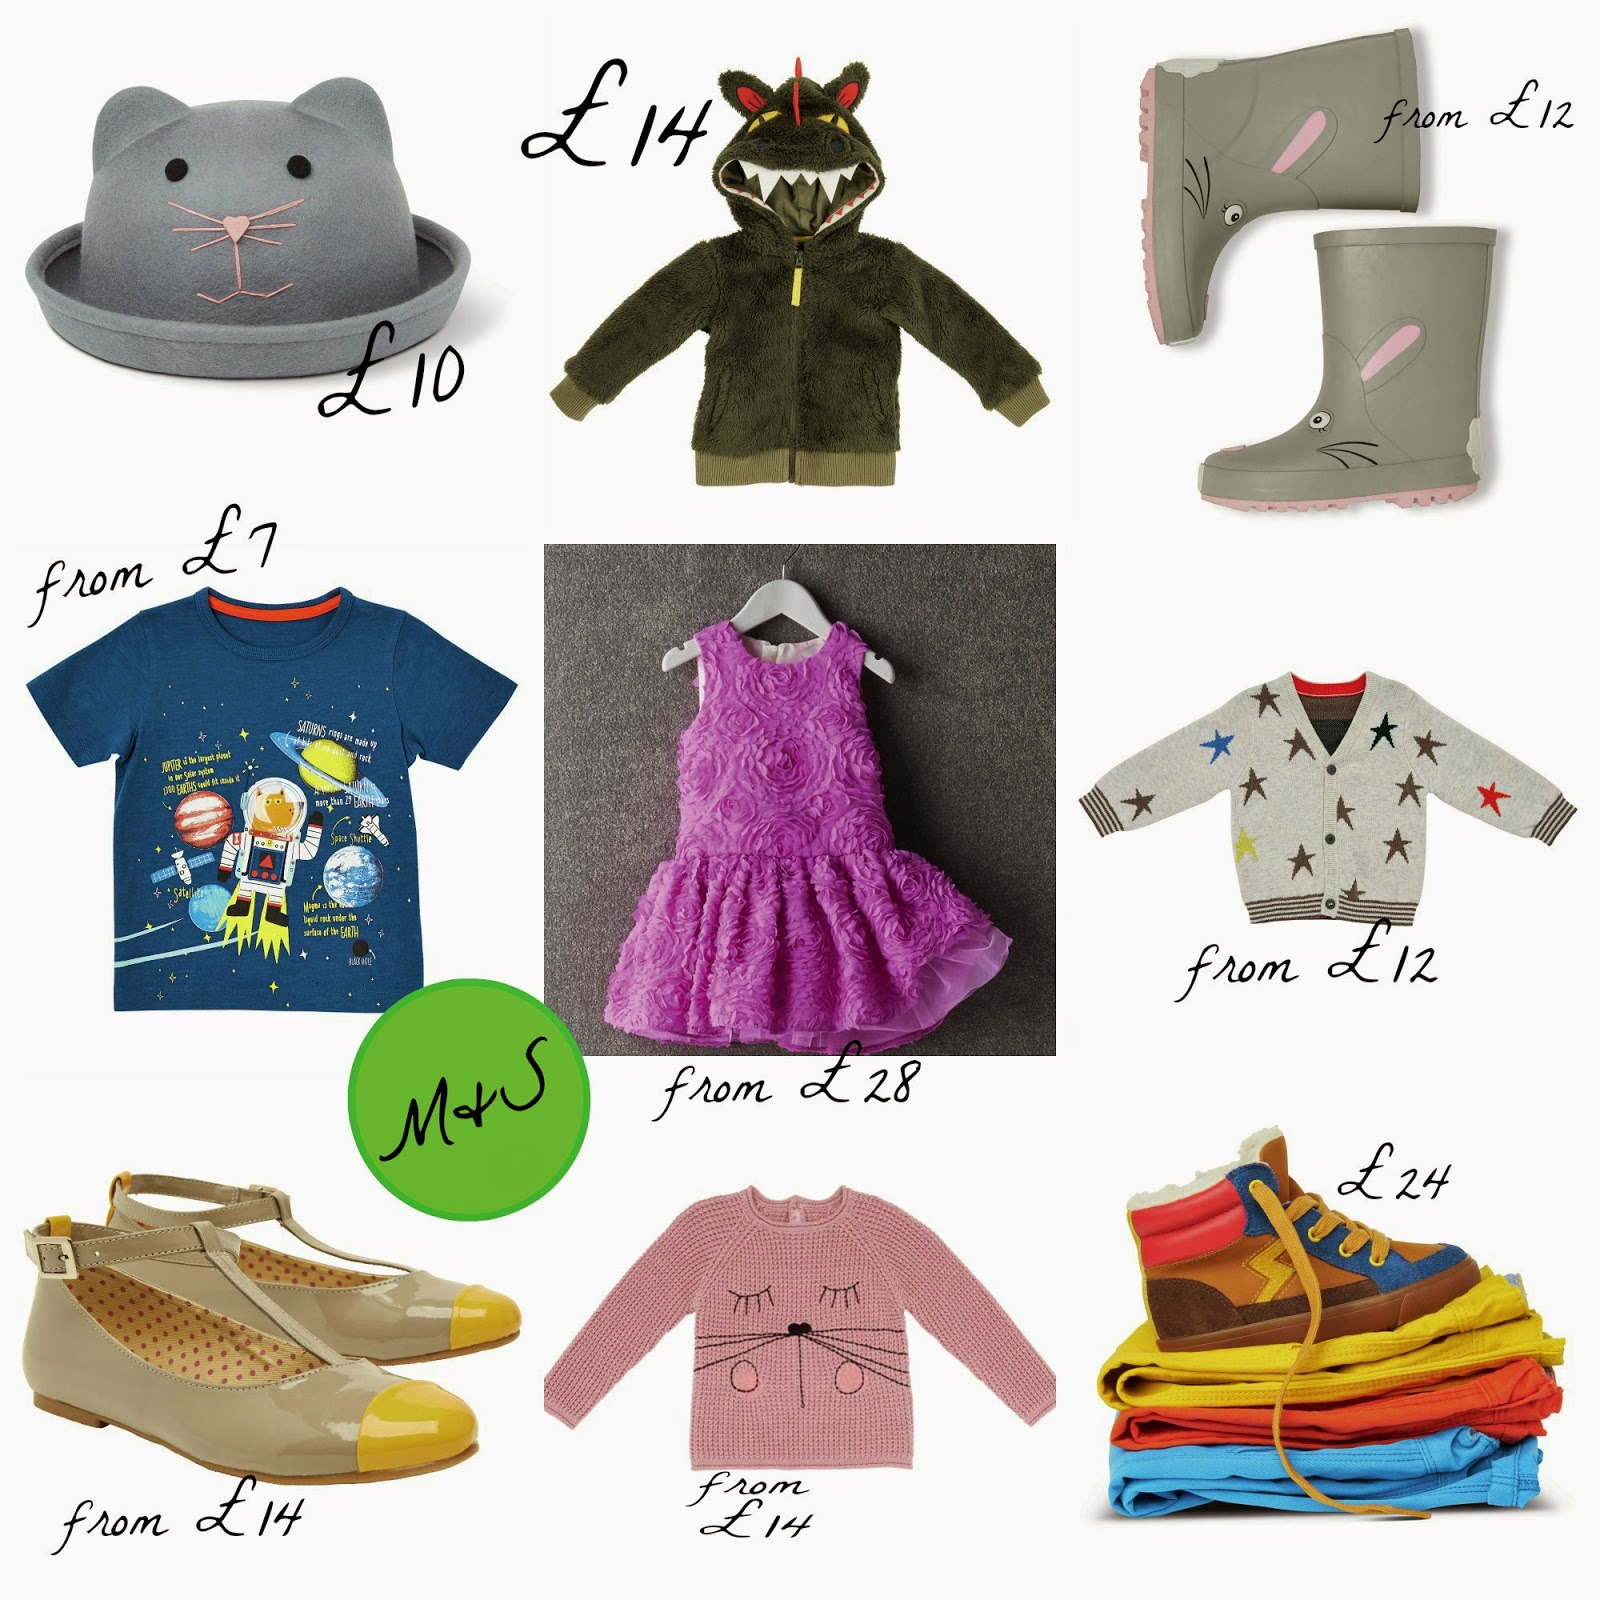 A round-up of my fave pieces for A/W 2014 - and the pieces to grab quick! | press shows | marks and spencer | boden | boden mini | joules | monsoon | monsoon kids | fashion | new season | autumn winter | fashion preview | kids fashion | minis fashionista | clothes | girls clothes | boys clothes | must-have pieces | samples | mamasVIb | now magazine | stylist | bonita Turner Fashion editor | mamas vin |